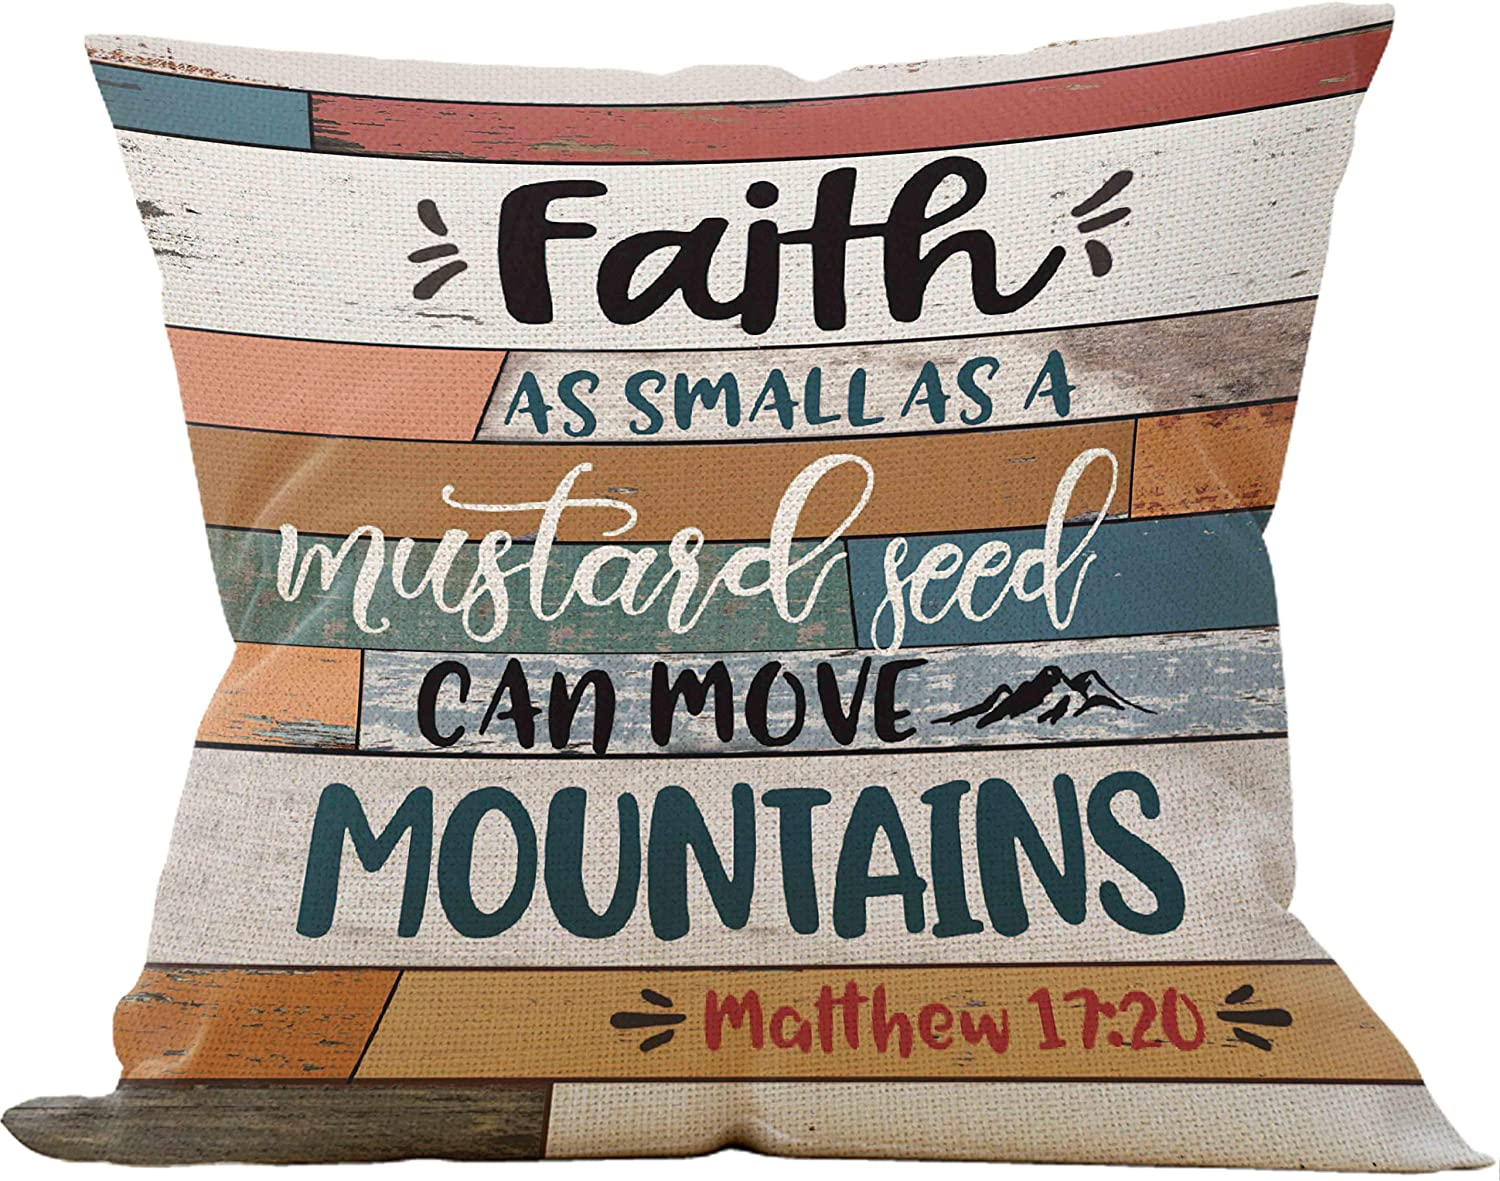 Faith As Small As a Mustard Seed, Can Move Mountains Throw Pillow Case, Christian Decor, Christian Gift, 18 x 18 Inch Scripture Art Decorative Linen Cushion Cover for Sofa Couch Bed, Matthew 17:20